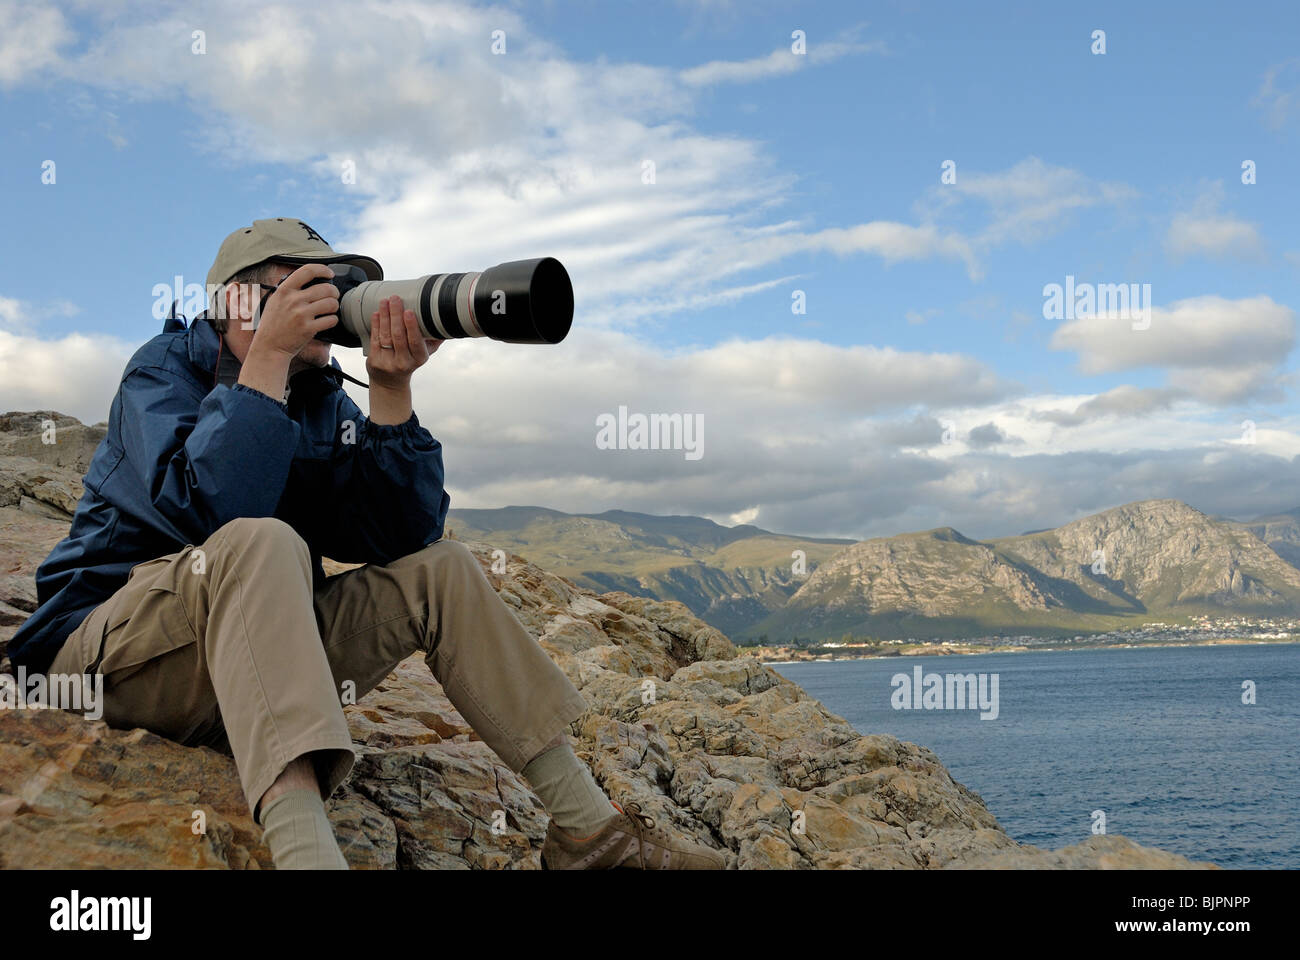 Bilder Vom Fotografen Man Photographer Taking A Photograph Of A Landscape With